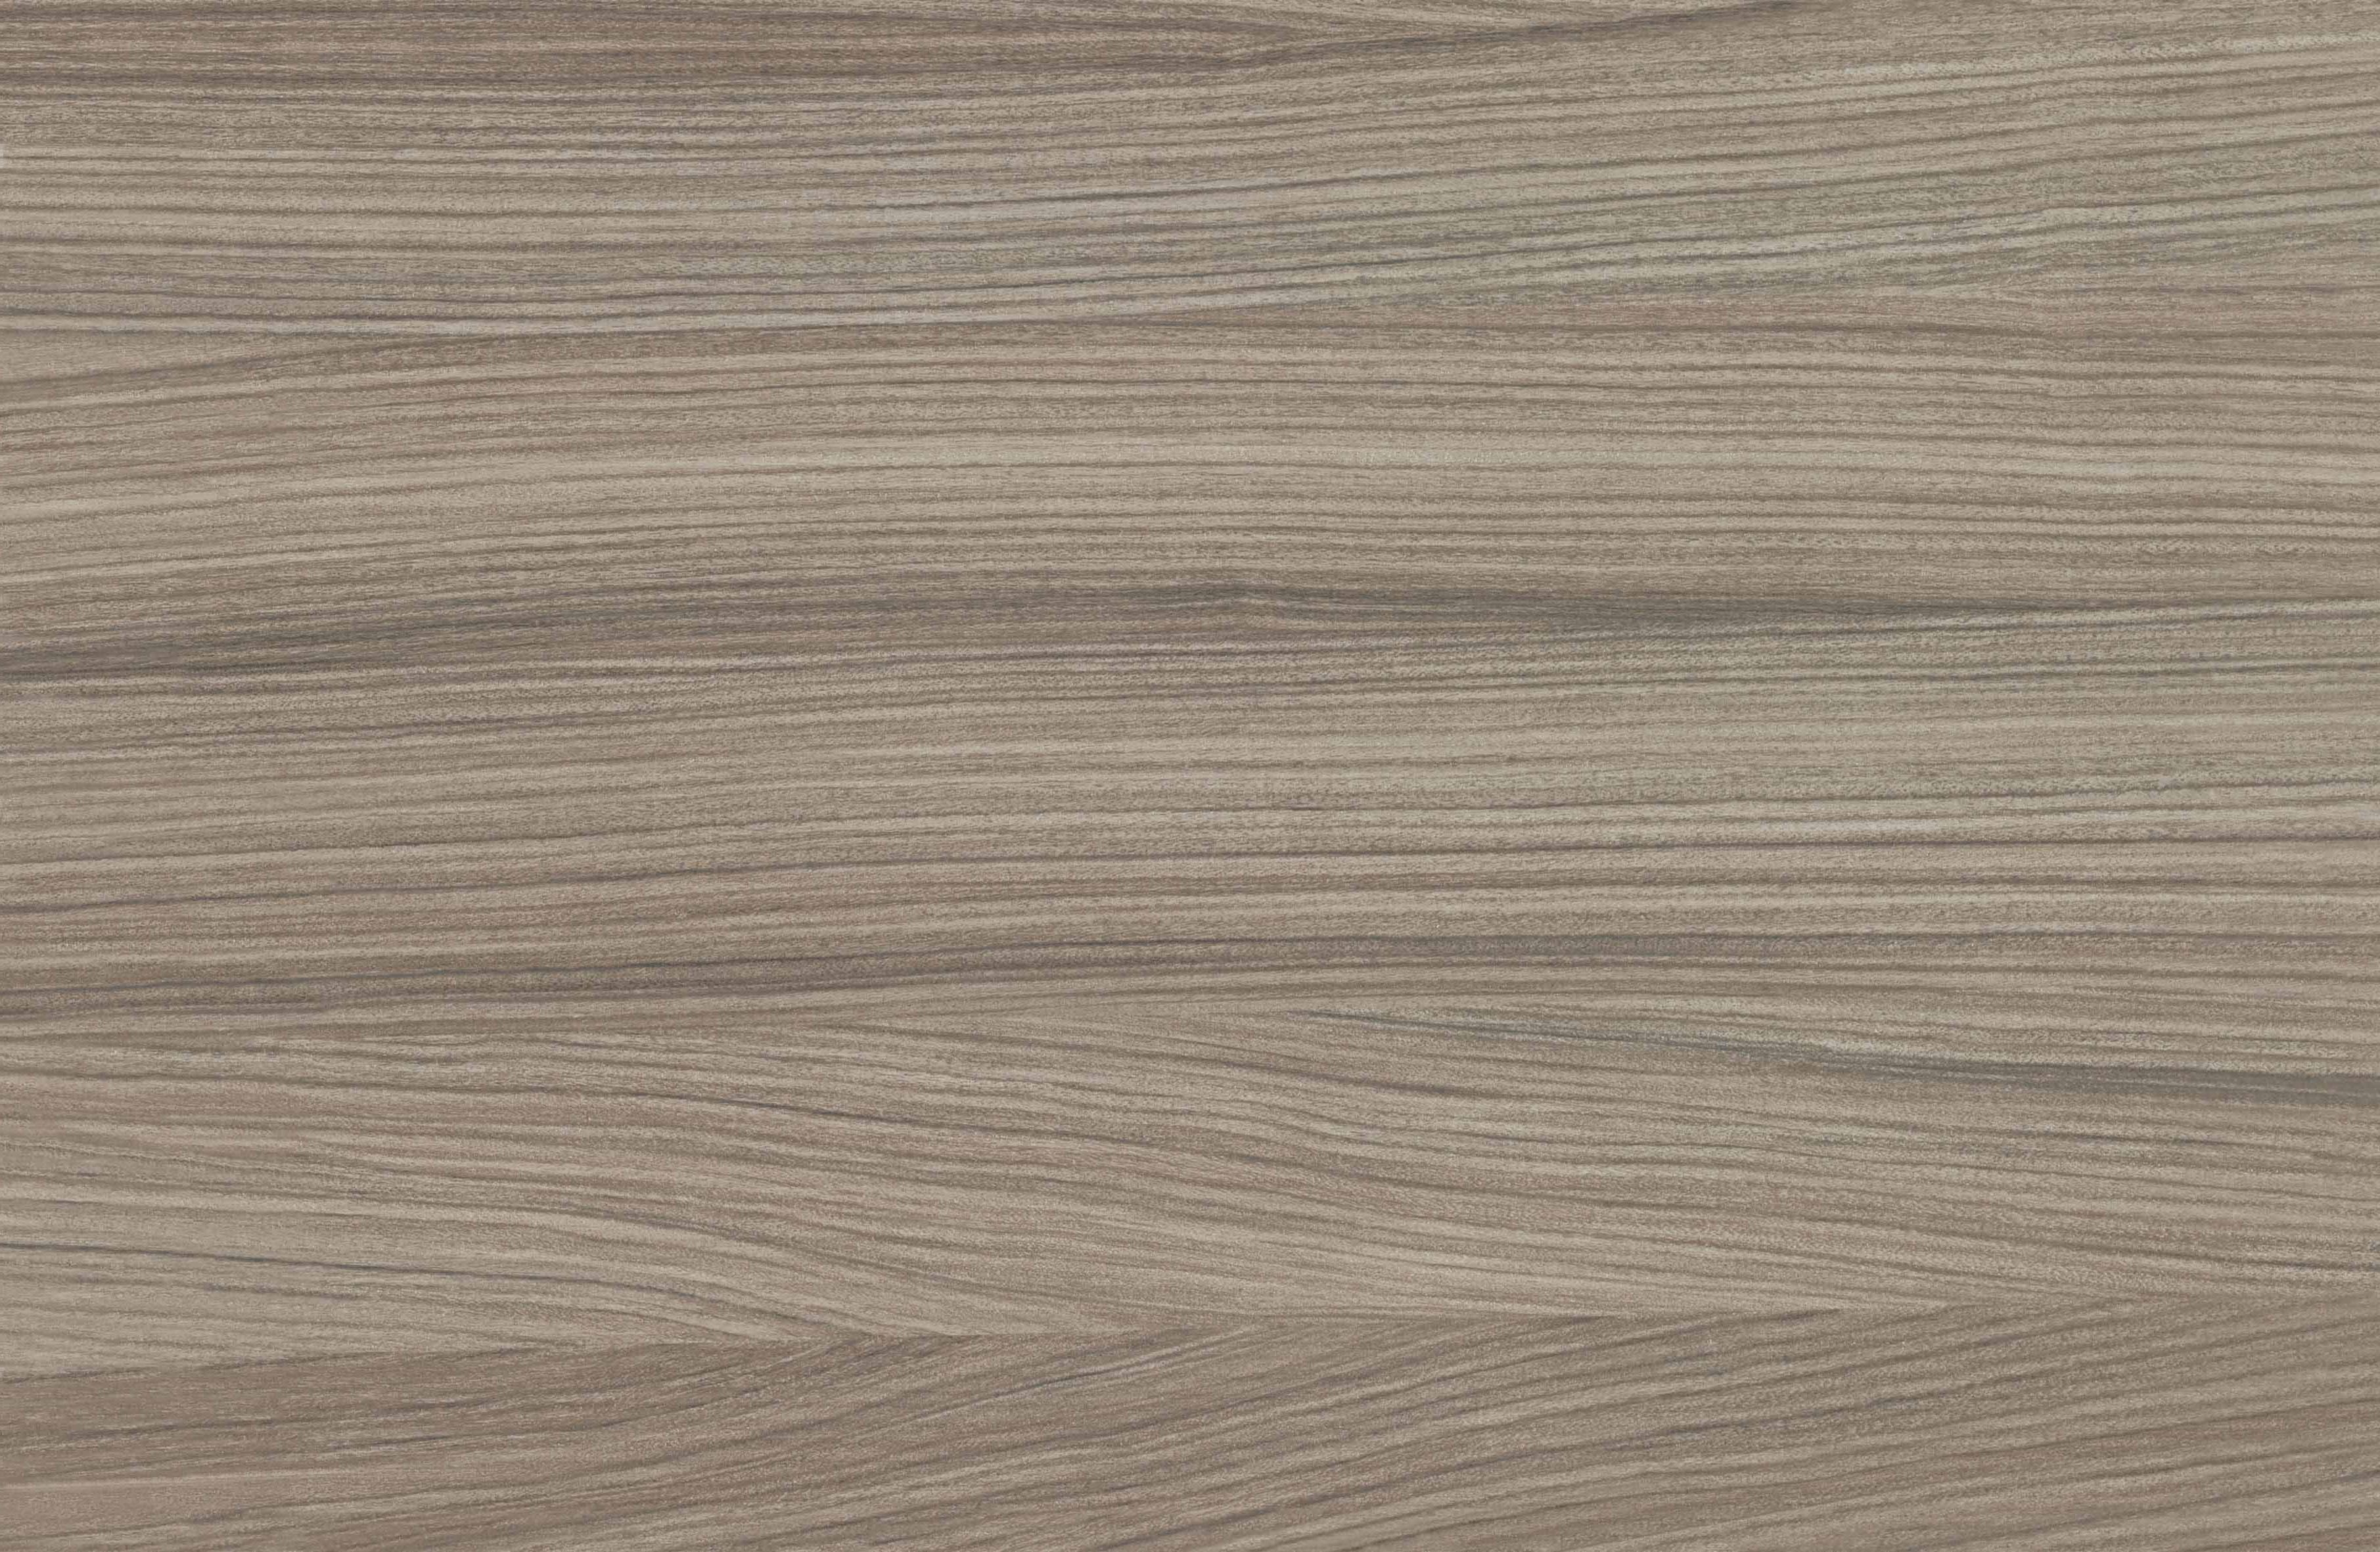 Wood Furniture Texture Hd Images 3 Hd Wallpapers Texture